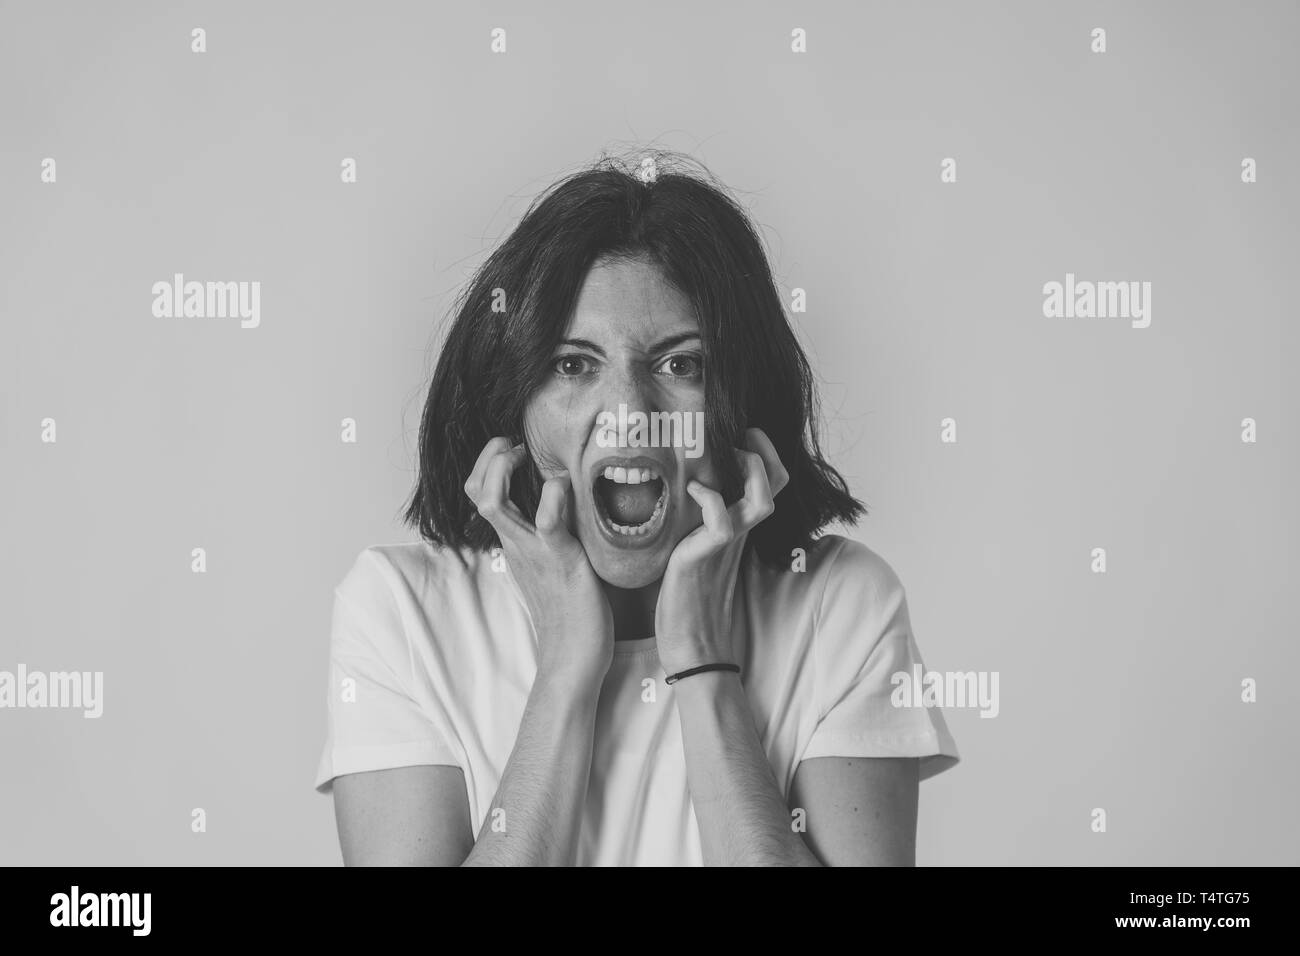 Black and white close up of young frustrated caucasian woman with angry and stressed face. Looking mad and crazy shouting and making hands gestures. C - Stock Image